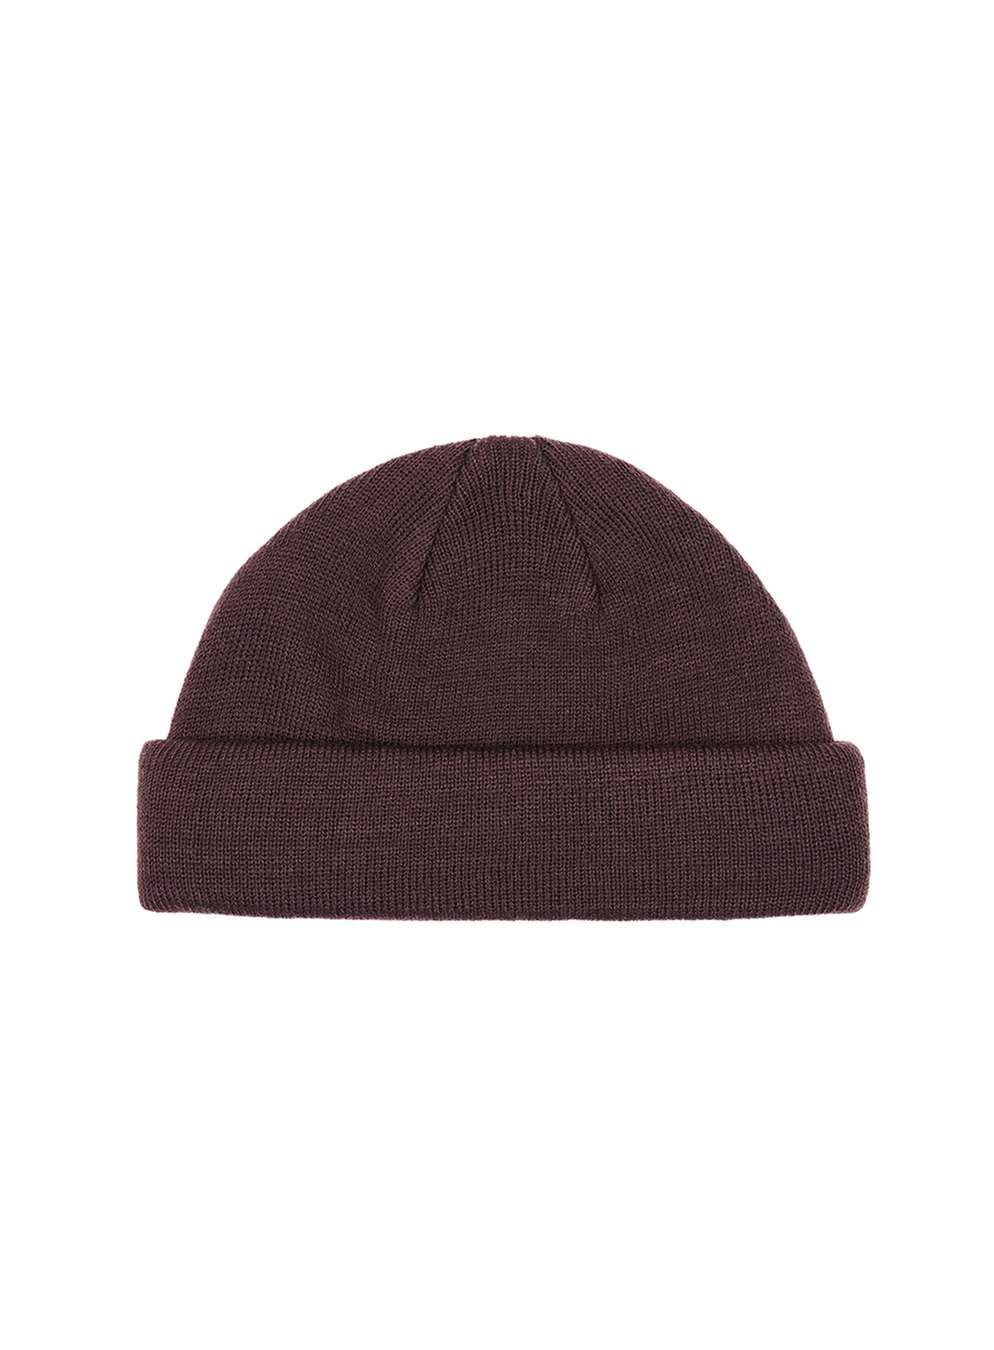 198614043a7 Burgundy Mini Fit Beanie Hat - Hats   Beanies - Shoes   Accessories ...